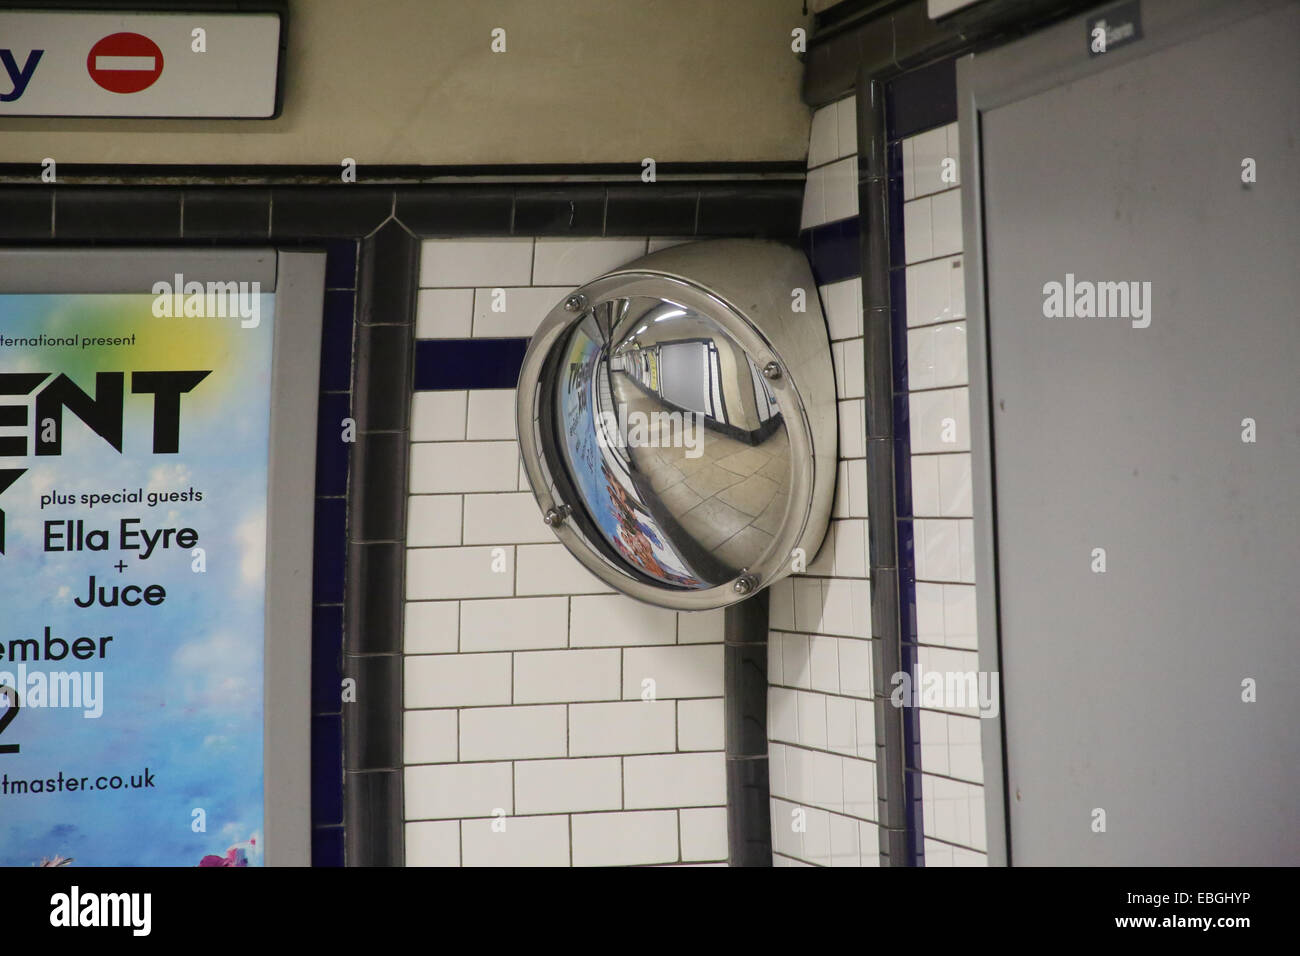 A convex security mirror at Kennington TFL underground tube station, London - Stock Image